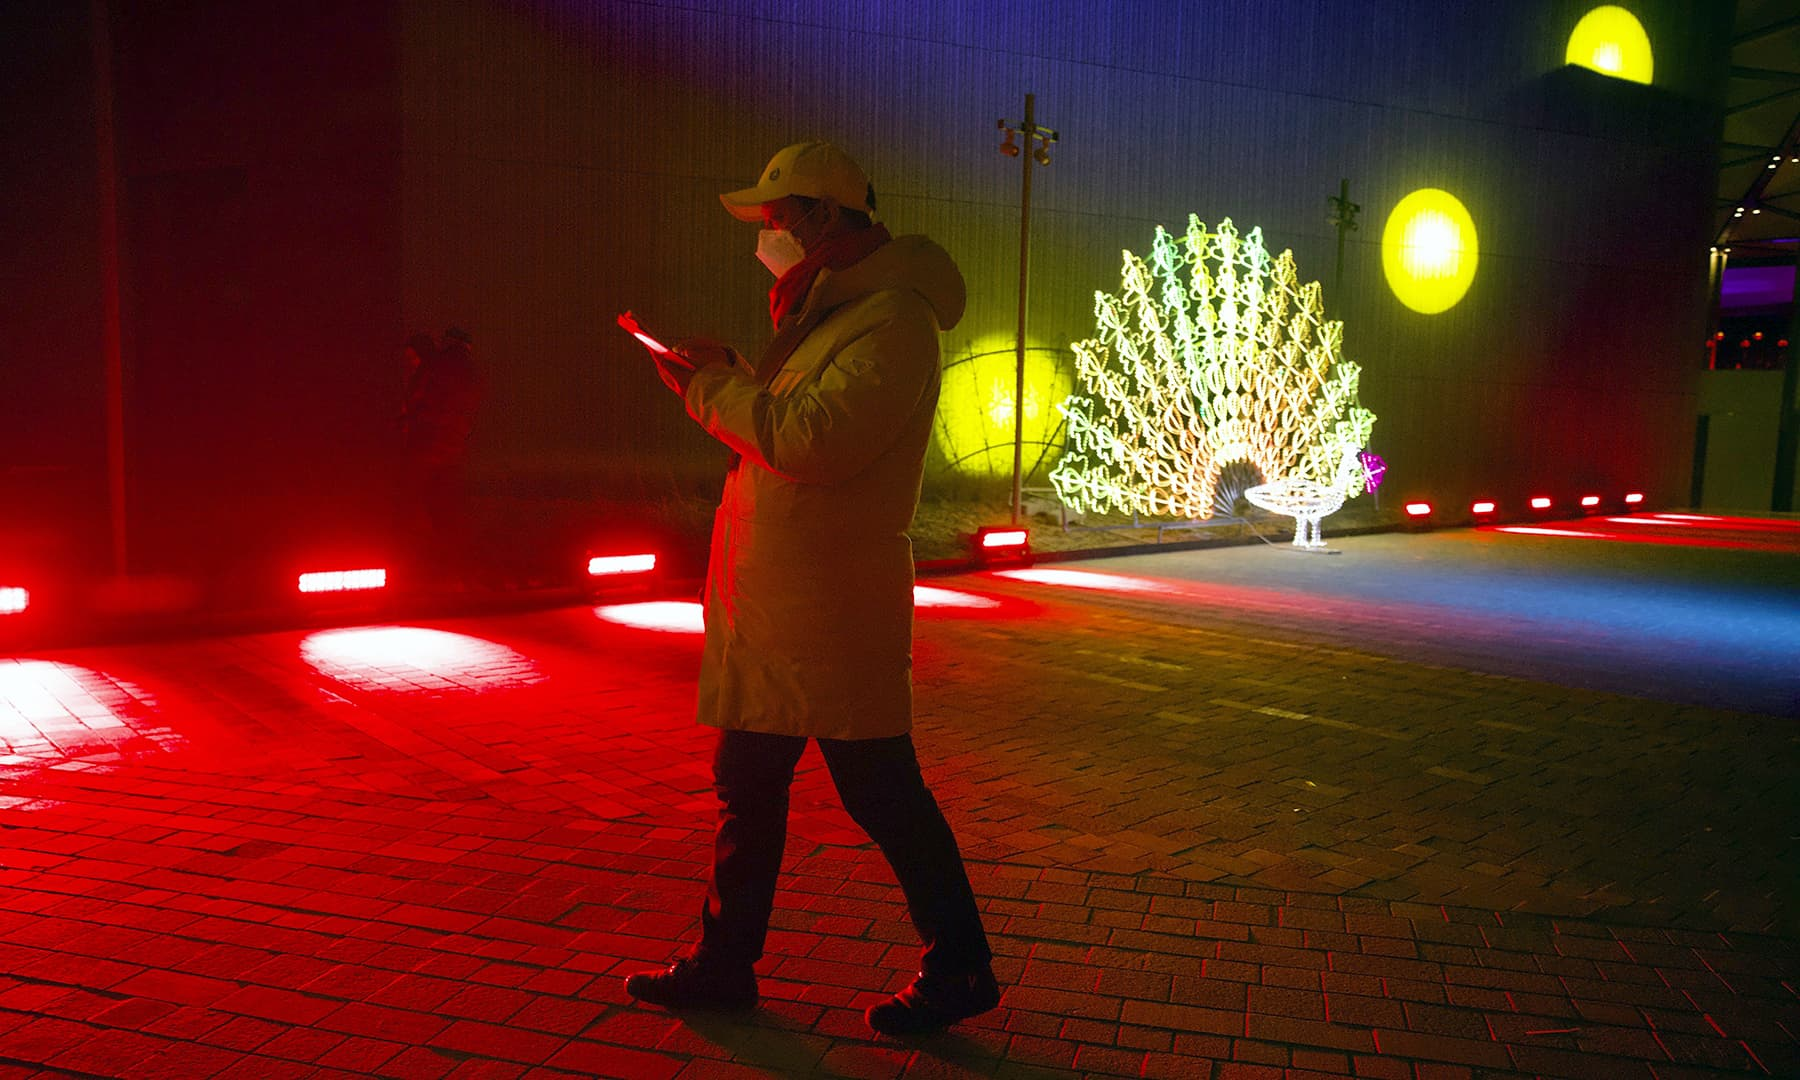 A man walks near a light sculpture before a New Year's Eve countdown event at the 2022 Beijing Winter Olympic headquarters in Bejiing, on Tuesday. — AP